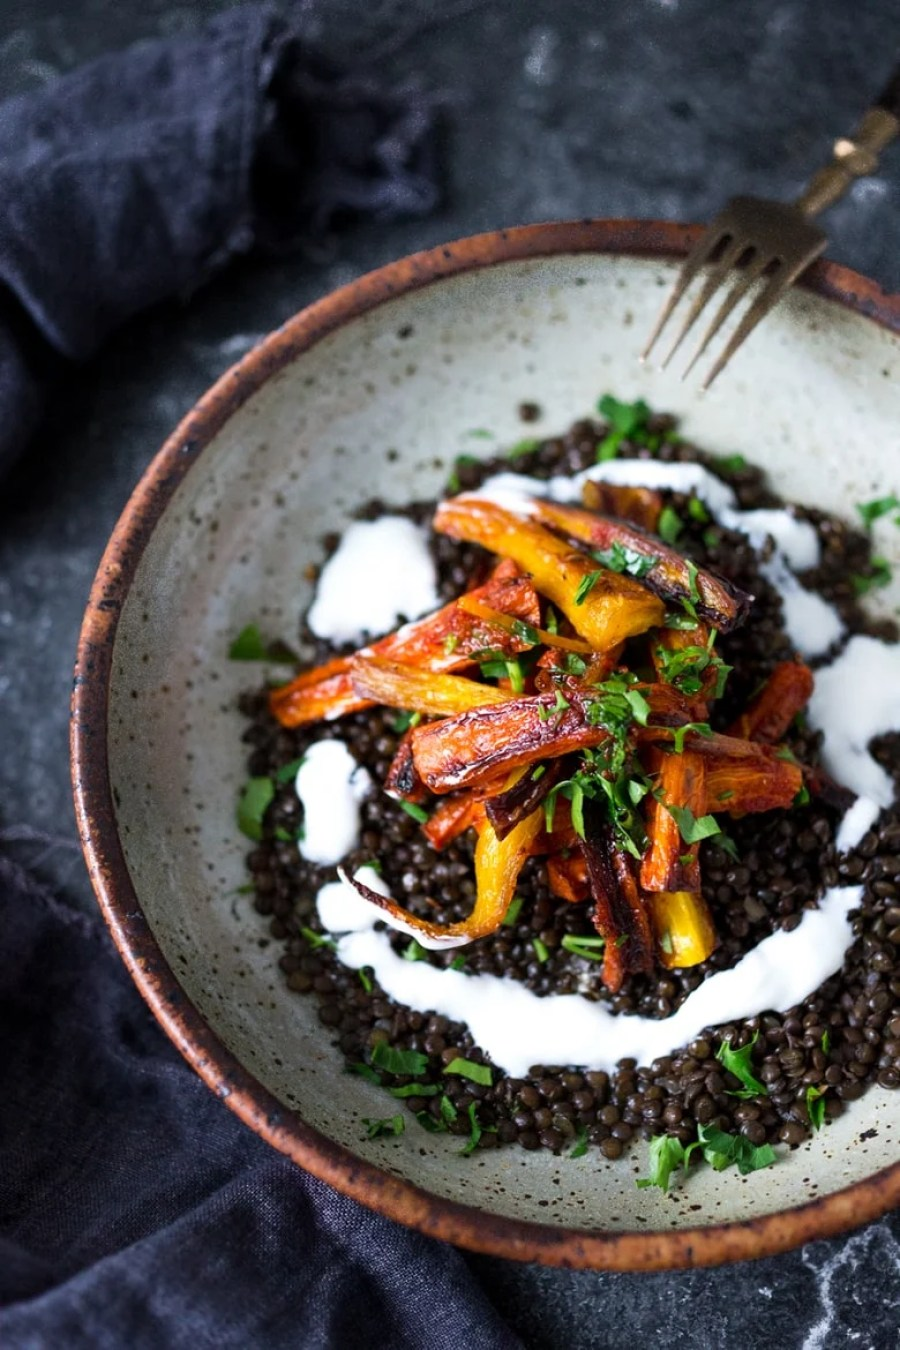 EAT CLEAN with these 20 simple Plant-Based Meals!!!  Roasted Moroccan Carrots over seasoned lentils for a hearty vegetarian meal.   www.feastingathome.com